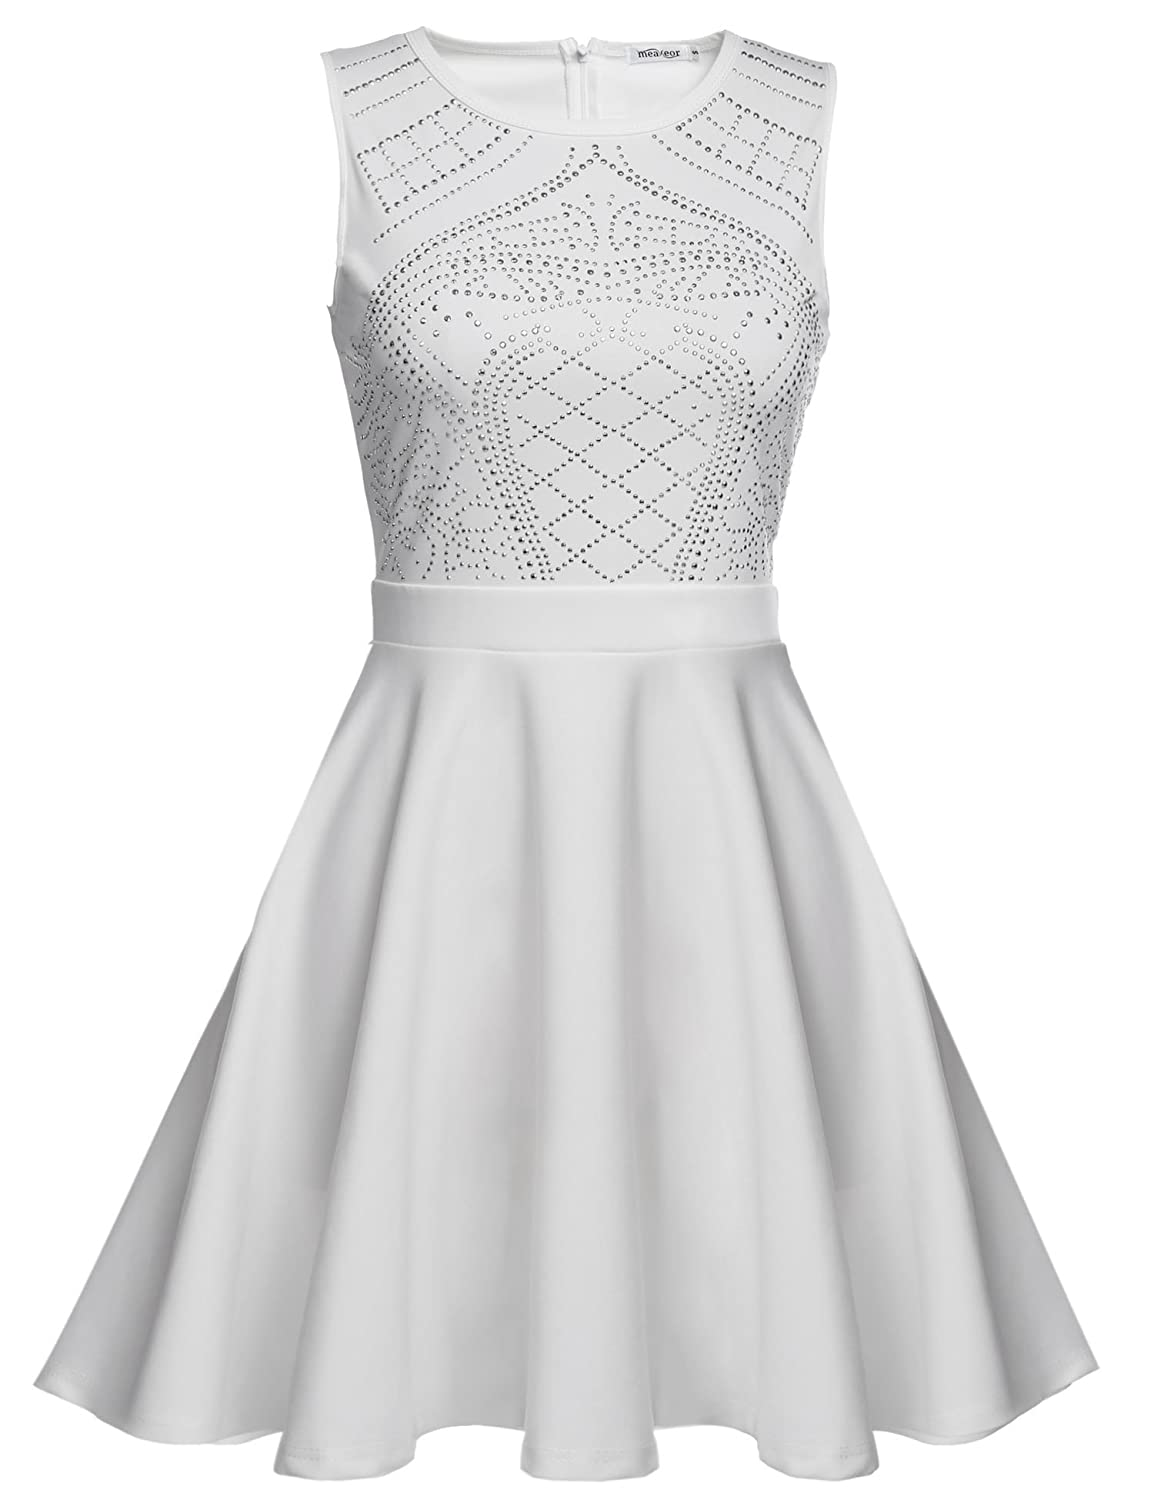 6c625035f05d Elegent sequin embellished sleeveless pleated flare A-line dress. Sleeveless,O-neck,Knee  Length,Back Zipper Great sparkly dress for every specail occasion ...